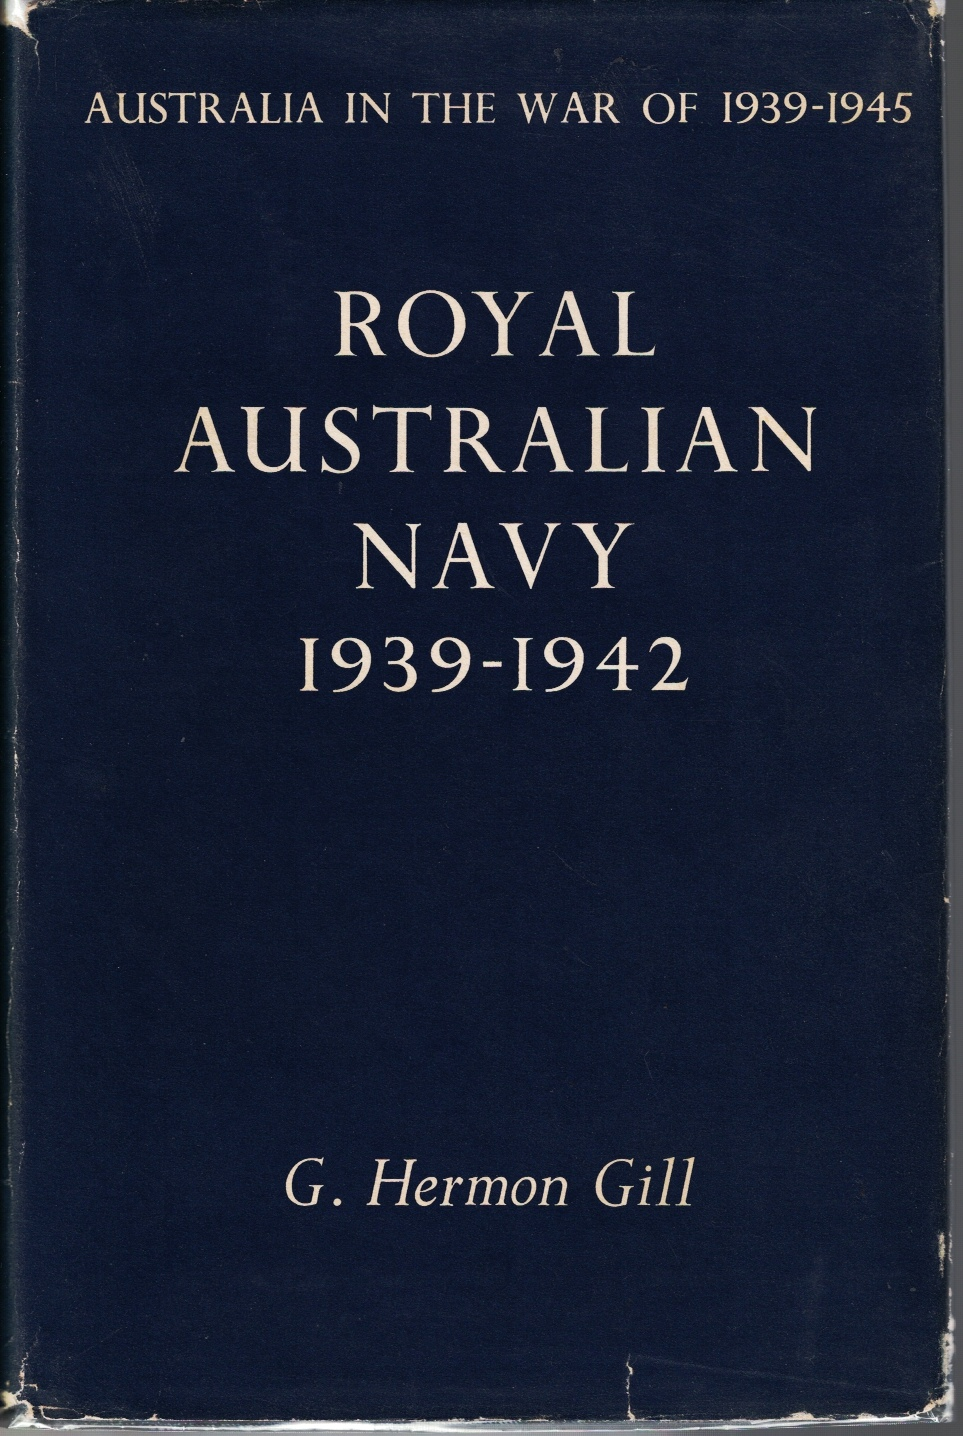 Image for Royal Australian Navy 1939-1942, and Royal Australian Navy 1942-1945 - 2 Volume Set (Australia in the War of 1939-1945)